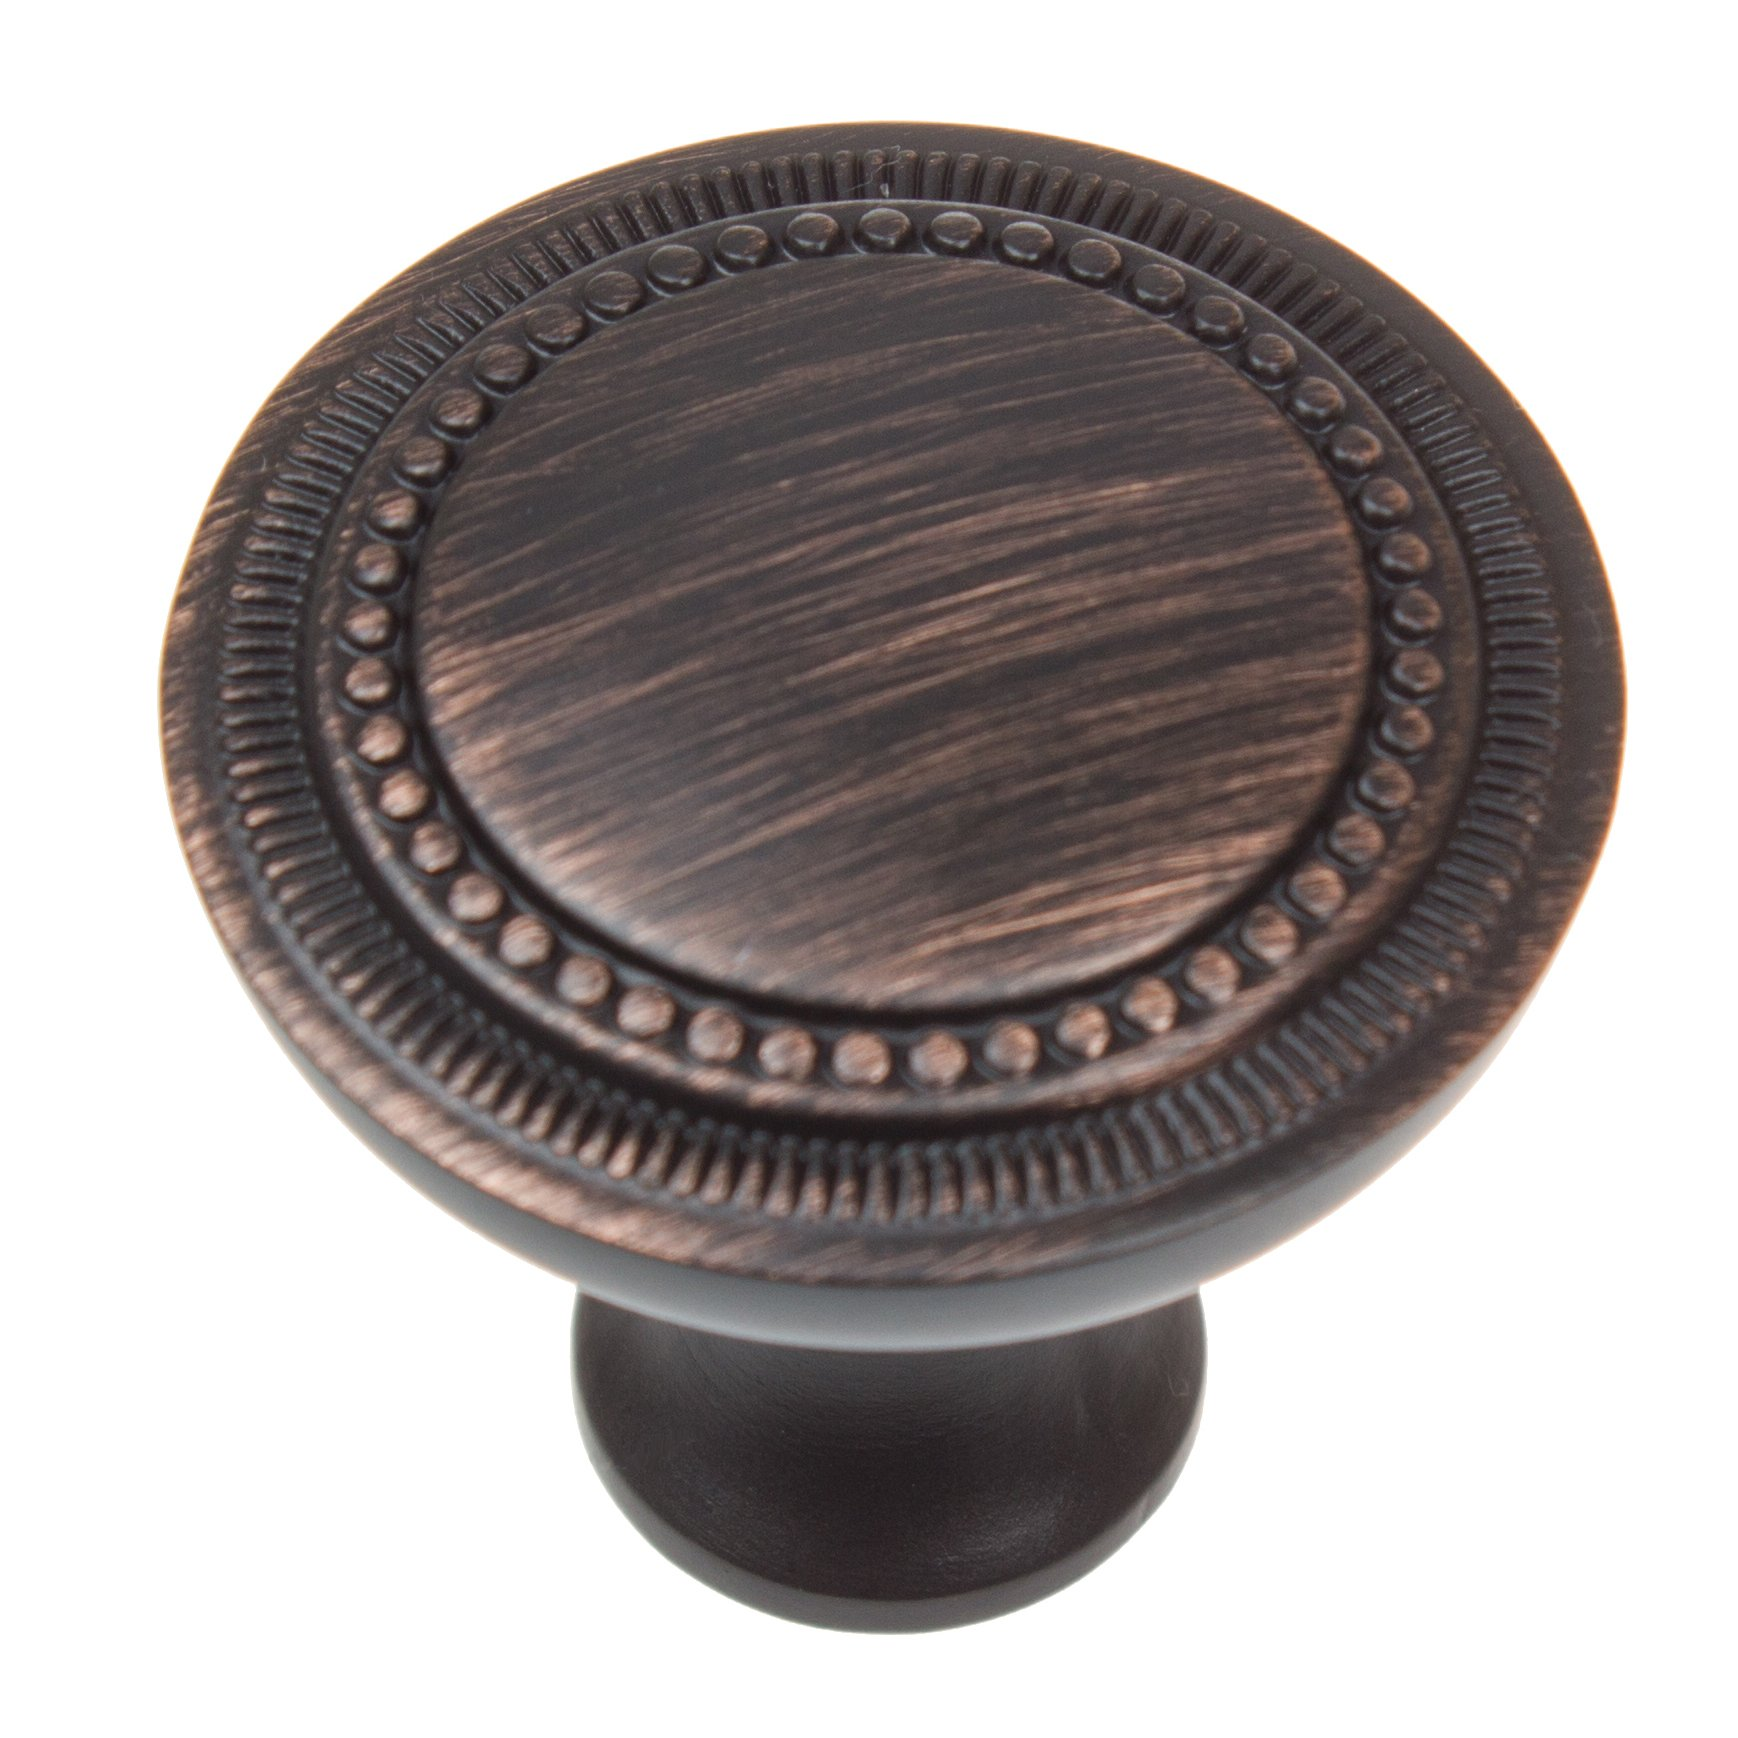 GlideRite Hardware 911036-ORB-10 Round Hammered Cabinet Knobs, 10 Pack, 1.25'', Oil Rubbed Bronze